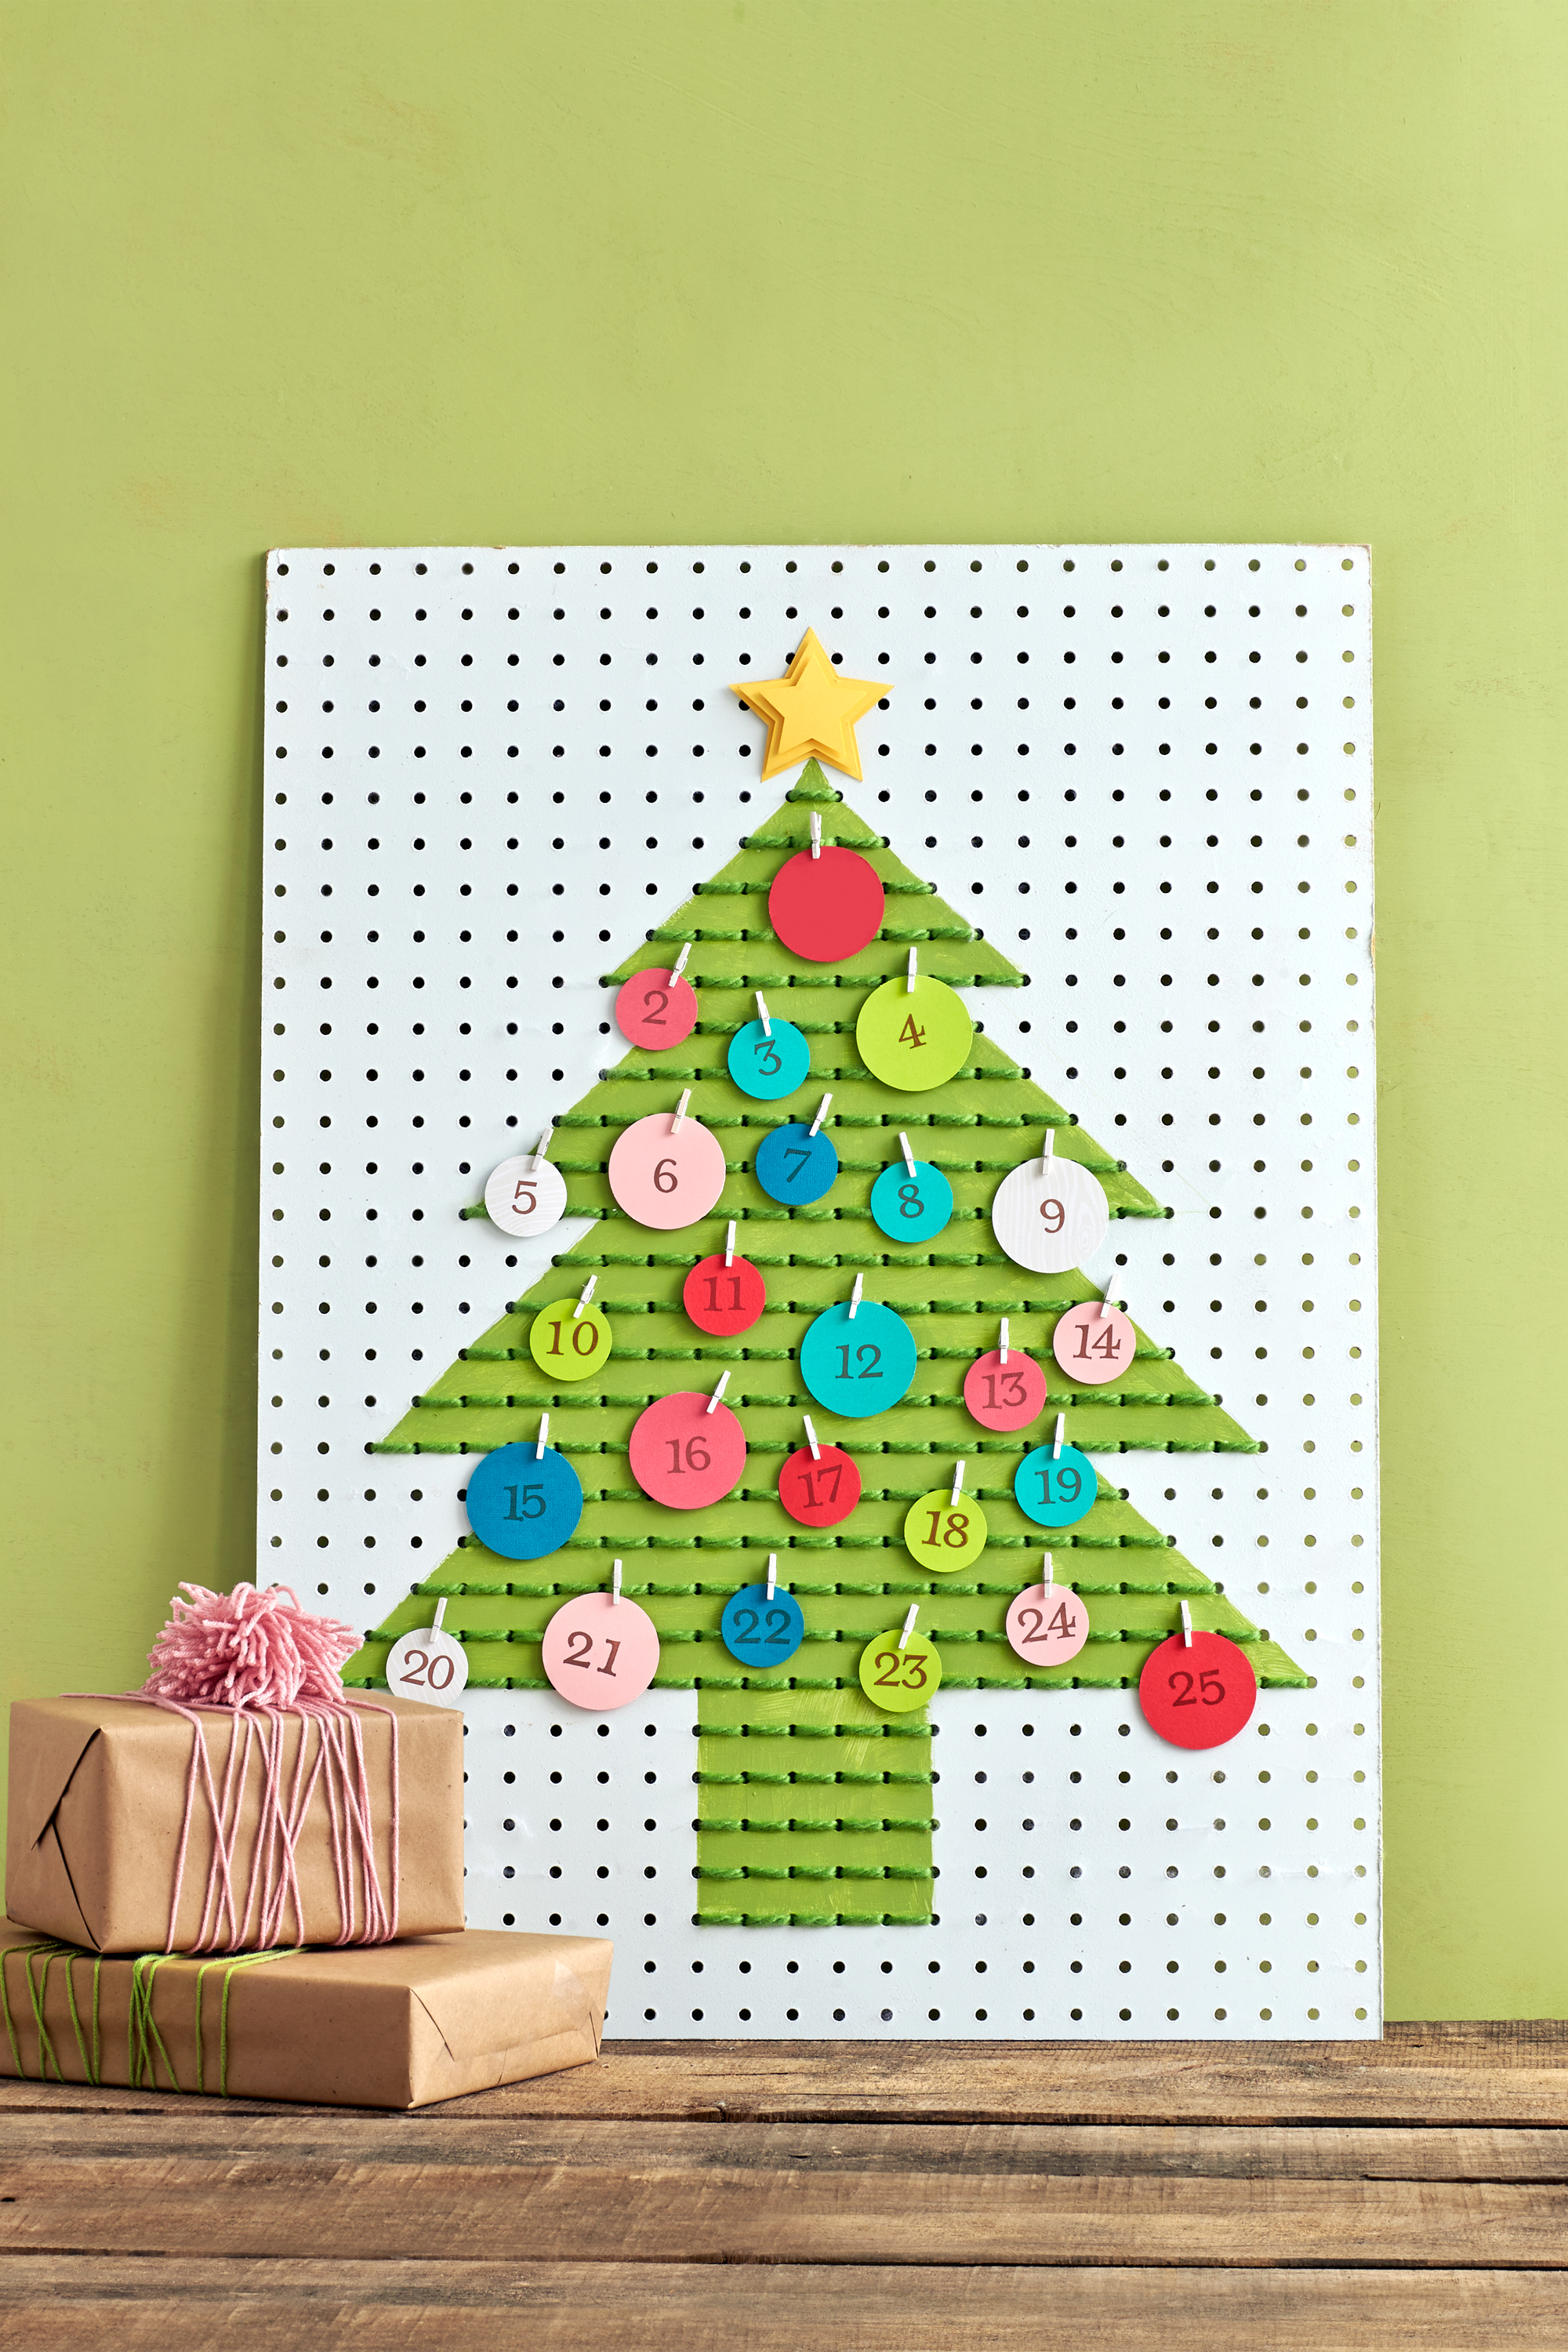 33 diy advent calendar ideas - homemade christmas advent calendars